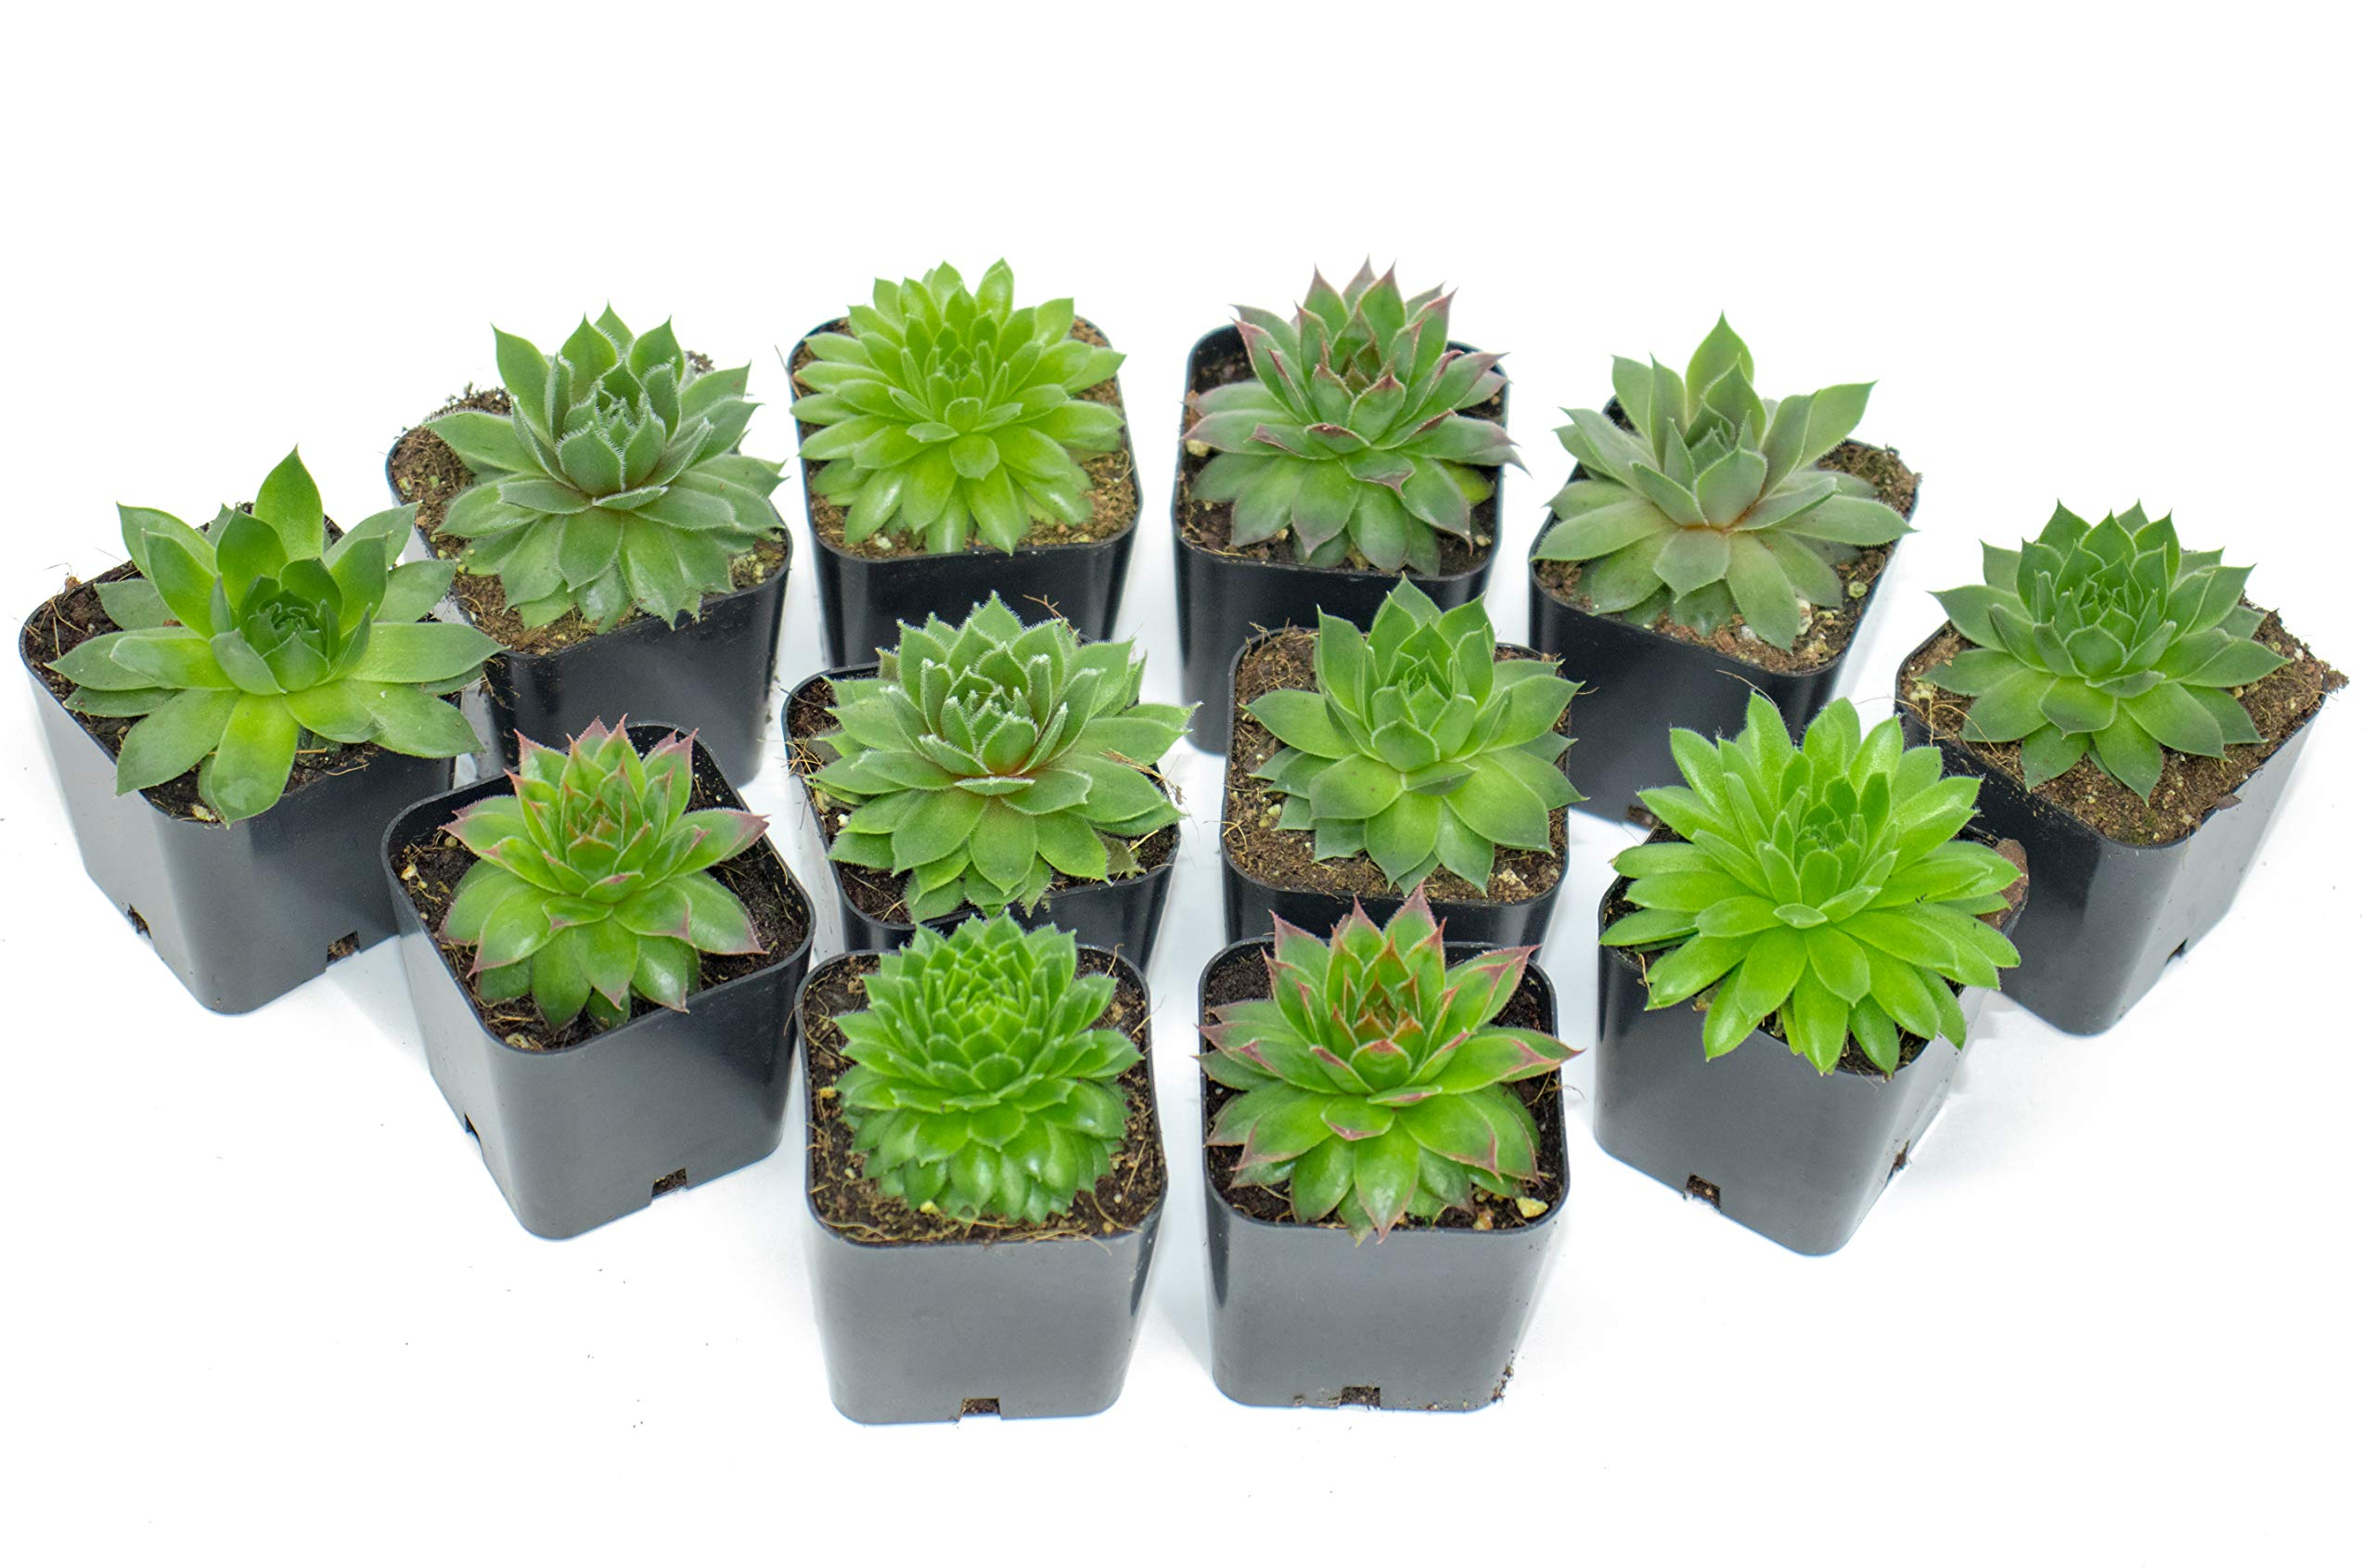 Succulent Plants | 20 Sempervivum Succulents | Rooted in Planter Pots with Soil | Real Live Indoor Plants | Gifts or Room Decor by Plants for Pets by Plants for Pets (Image #7)